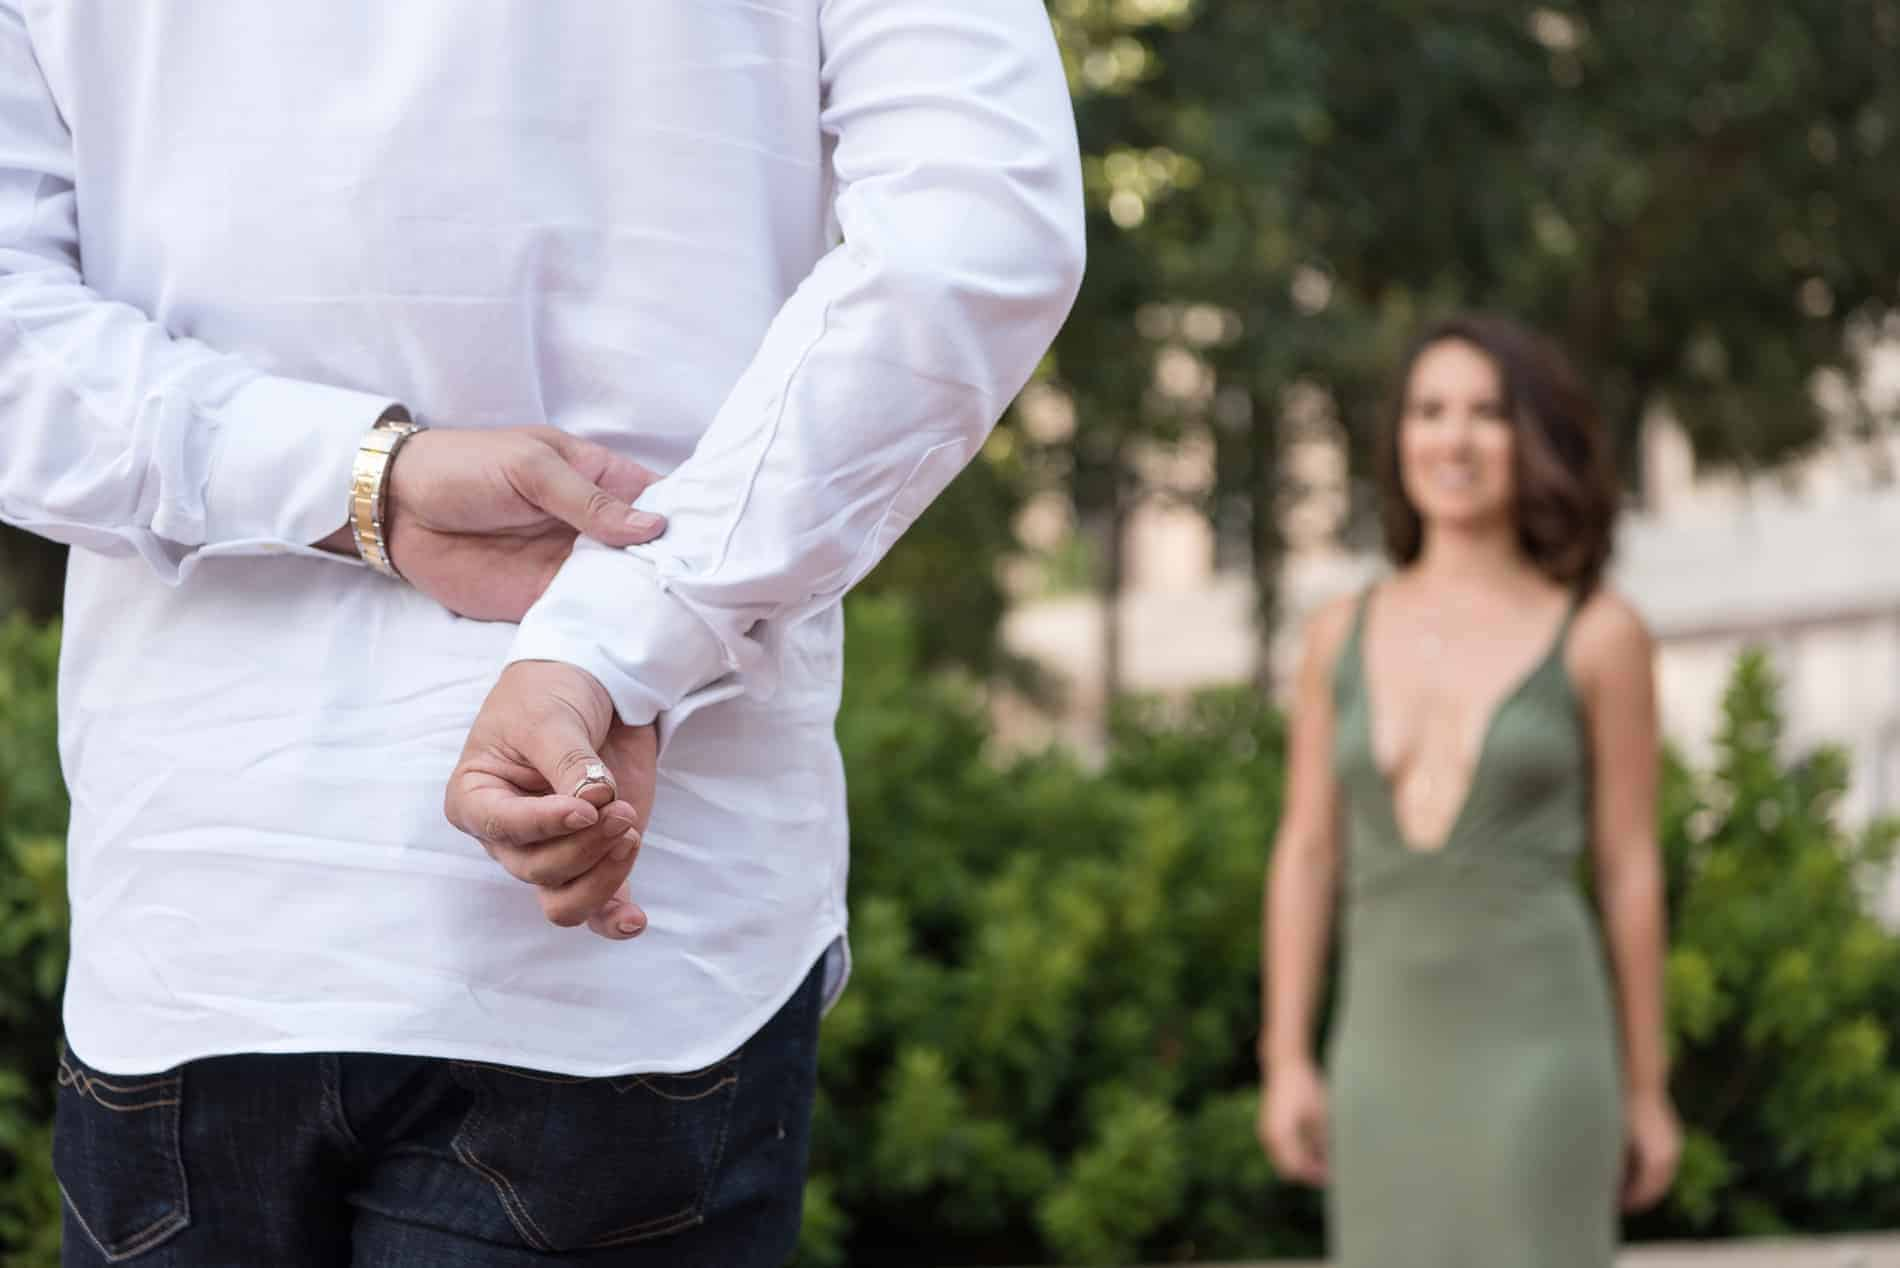 The ring is hidden in this downtown Orlando Proposal